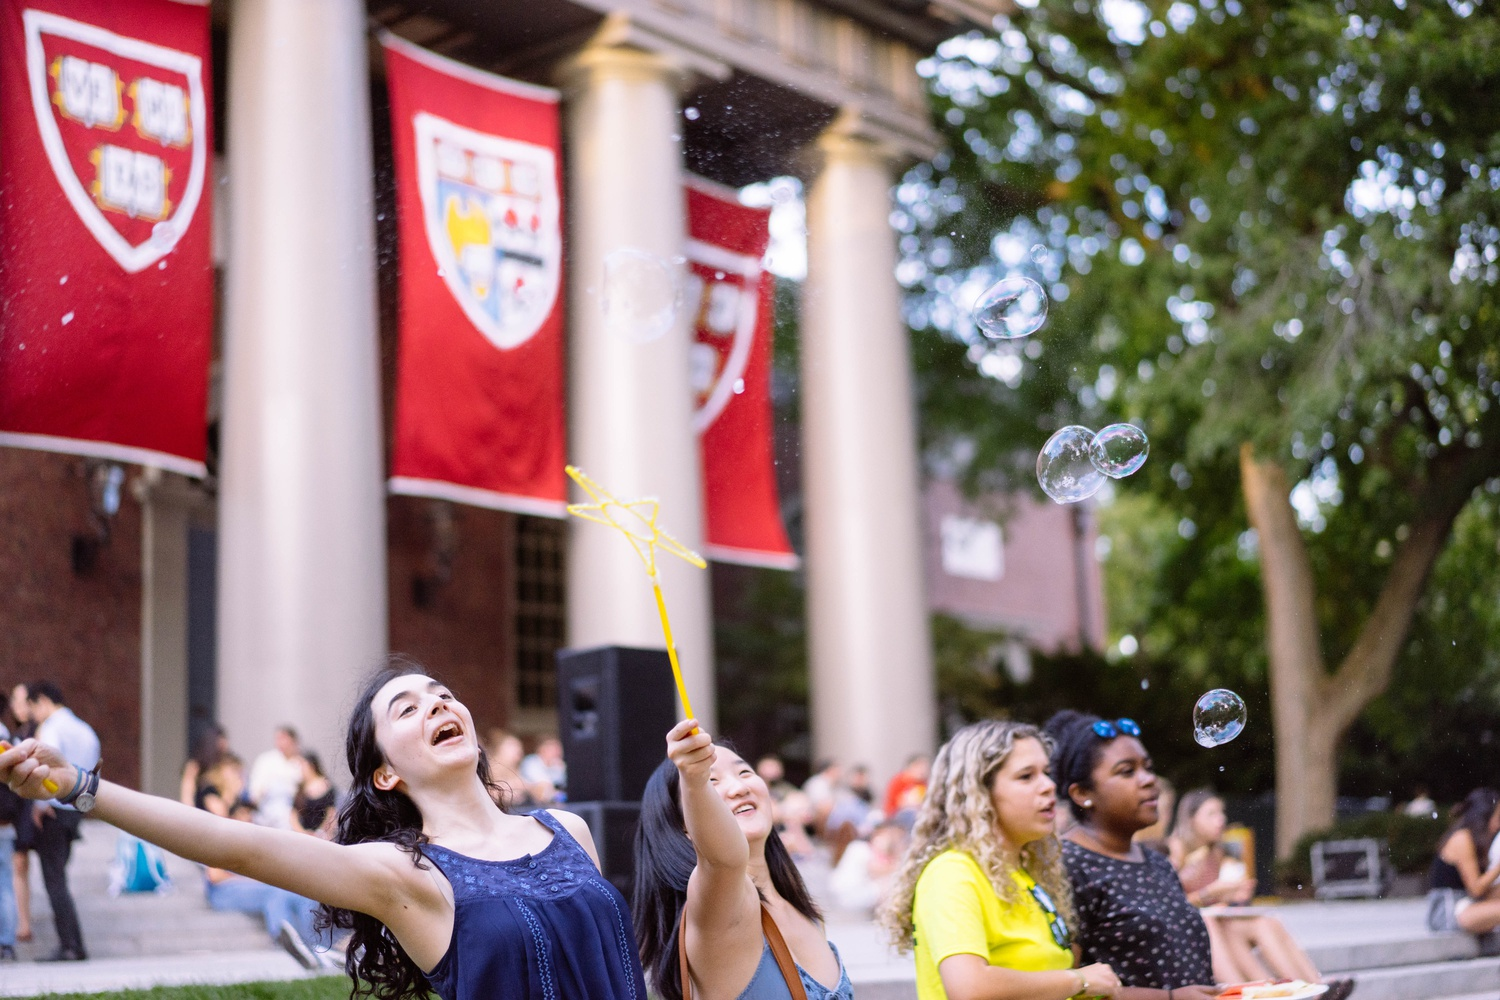 The College Events Board recreates memories of summer at the annual Camp Harvard last Friday with grilled foods, games, and music.